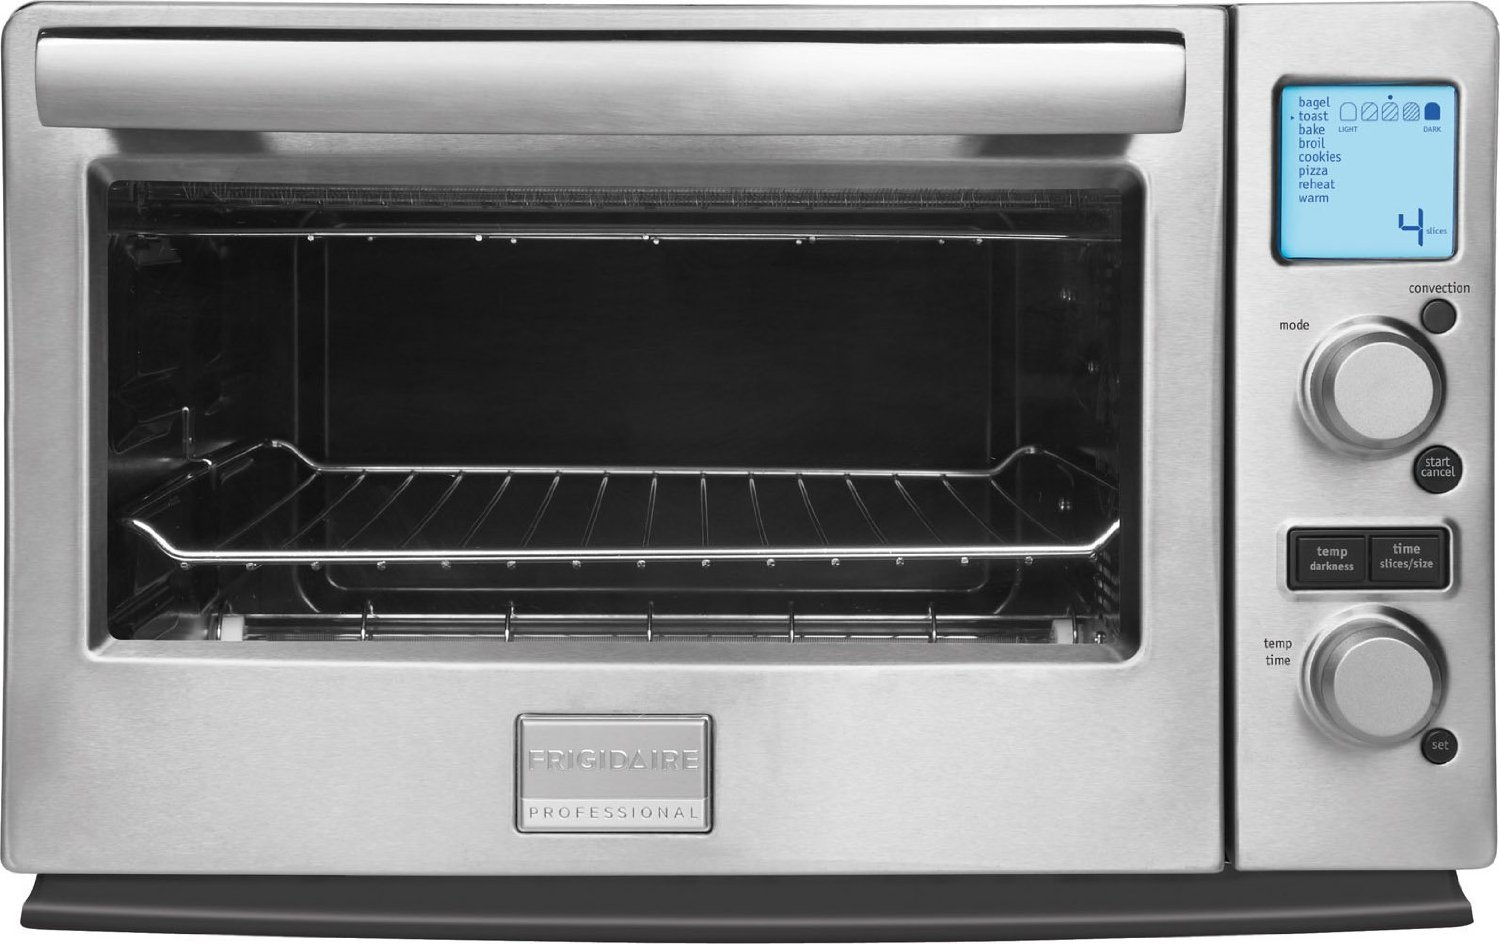 Professional Countertop Convection Oven Reviews : Frigidaire Professional Infrared Convection Toaster Oven Review